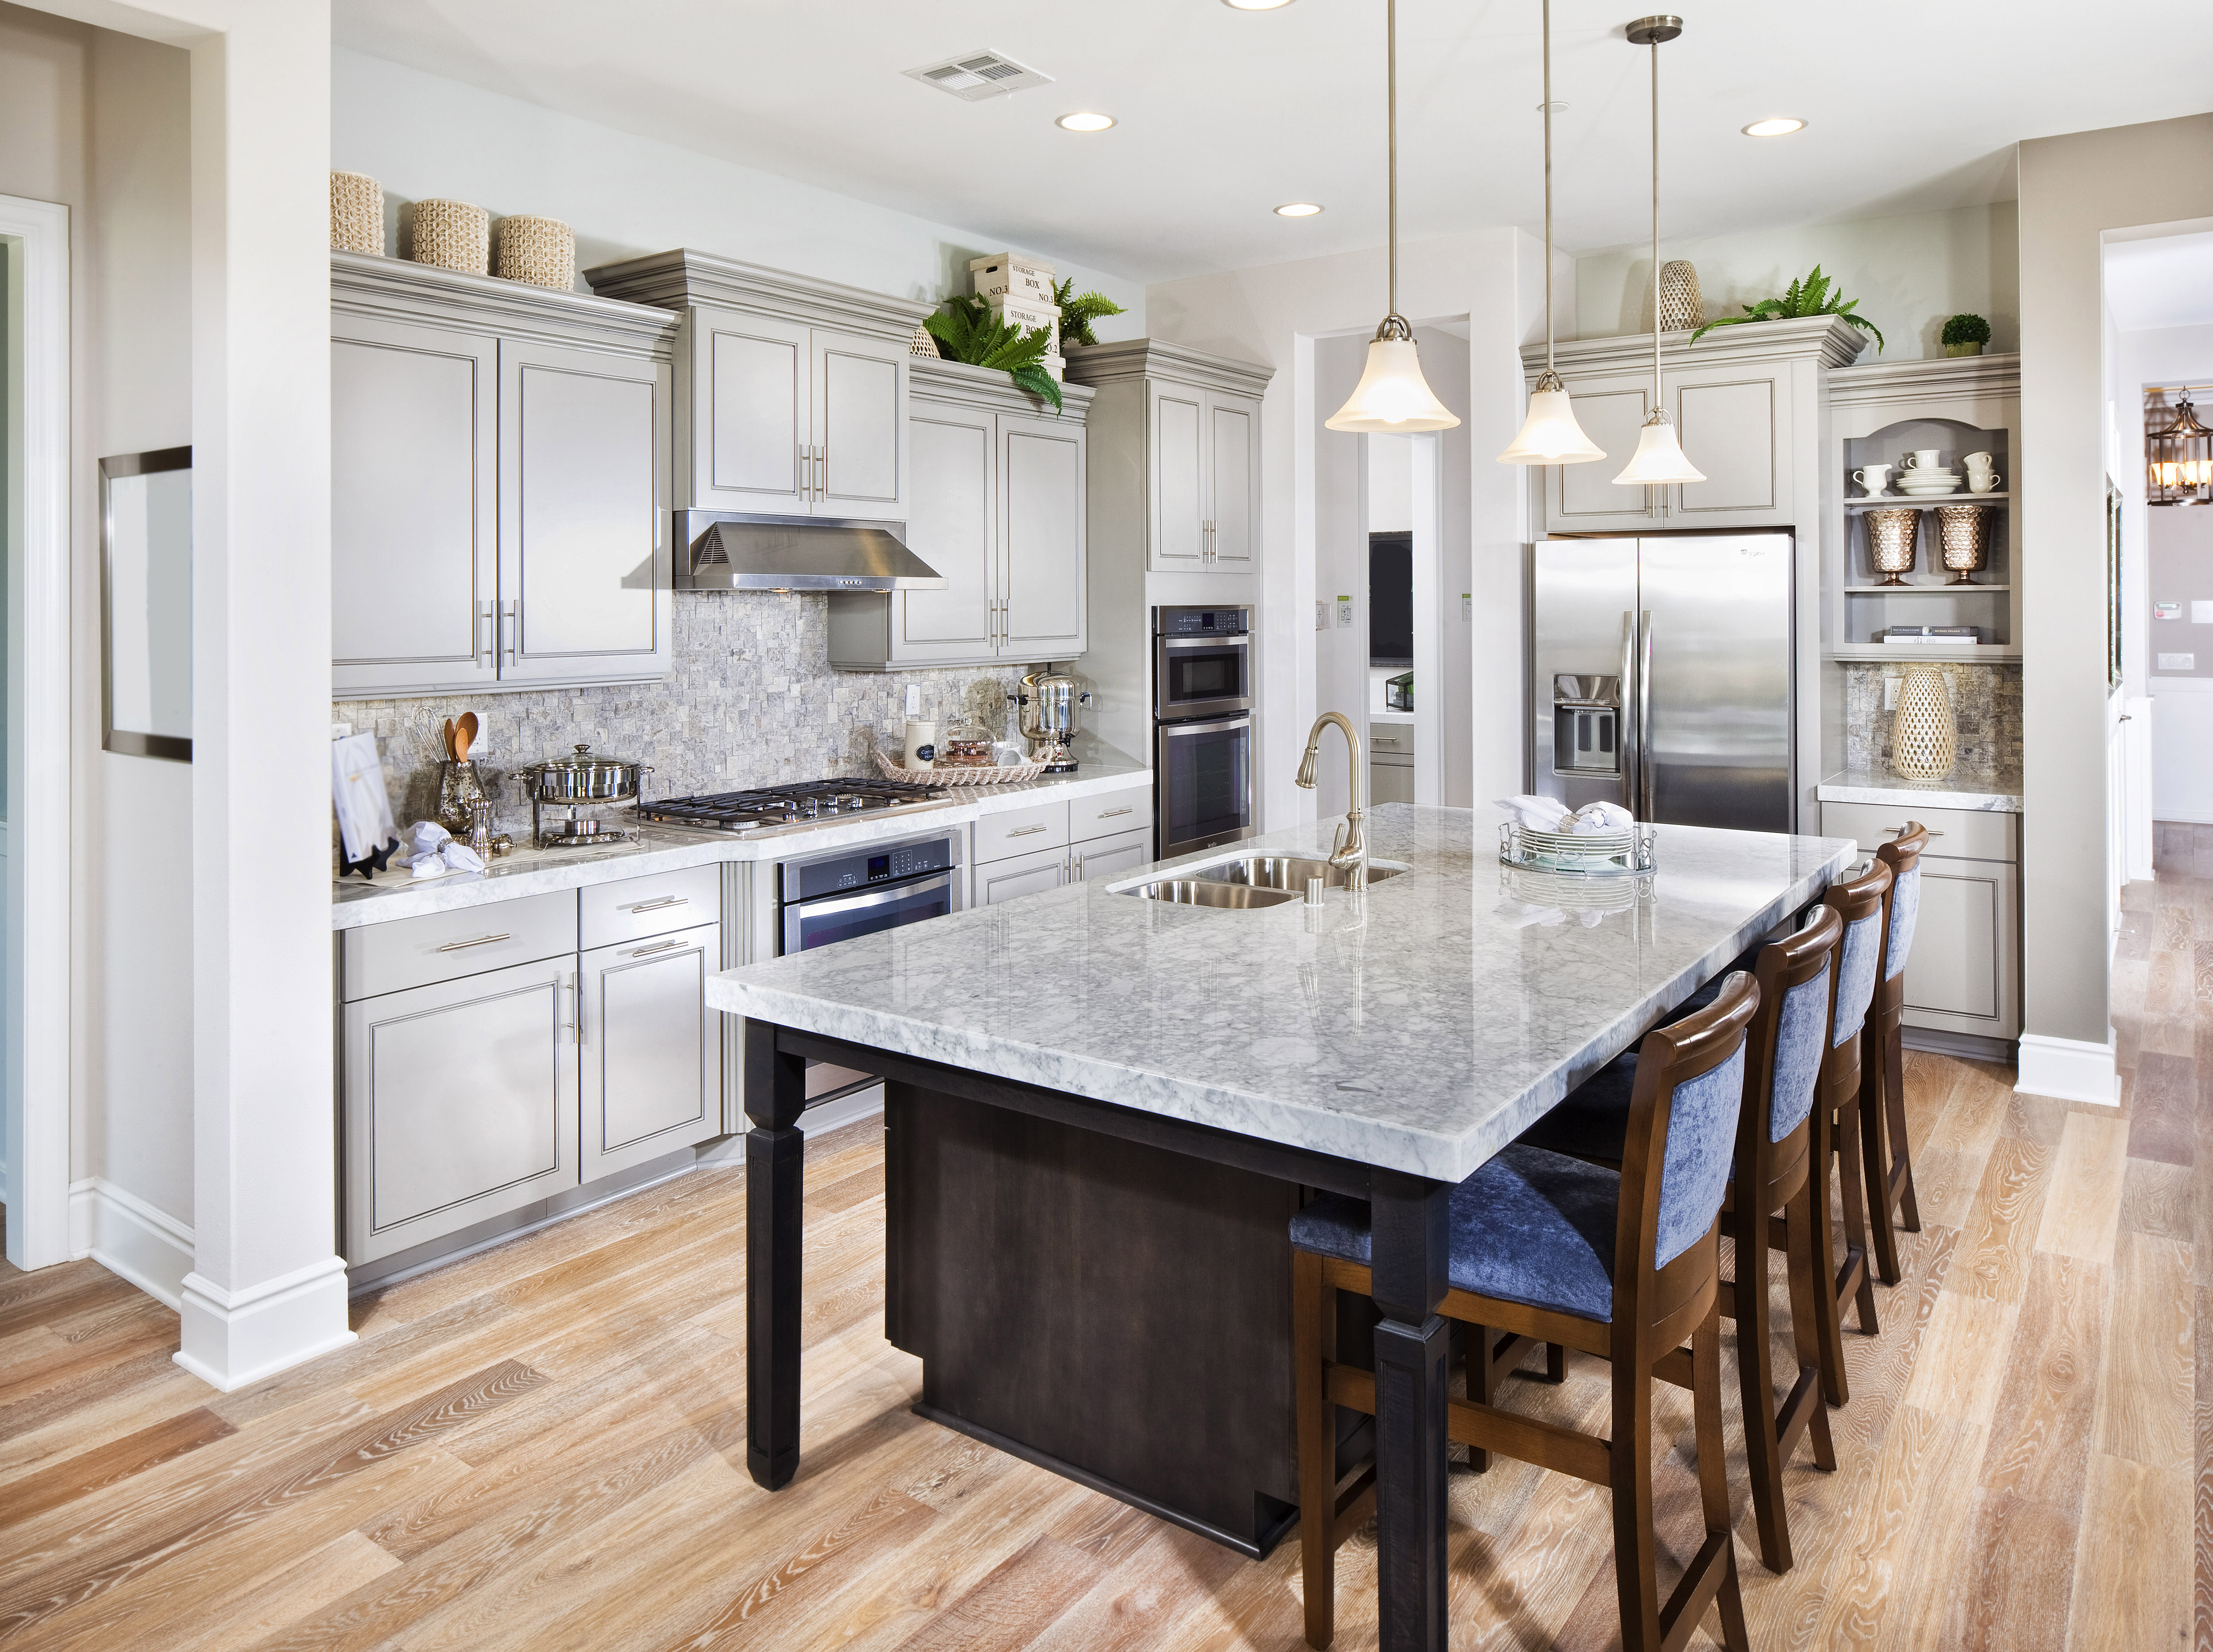 Luxury kitchen with island and stools